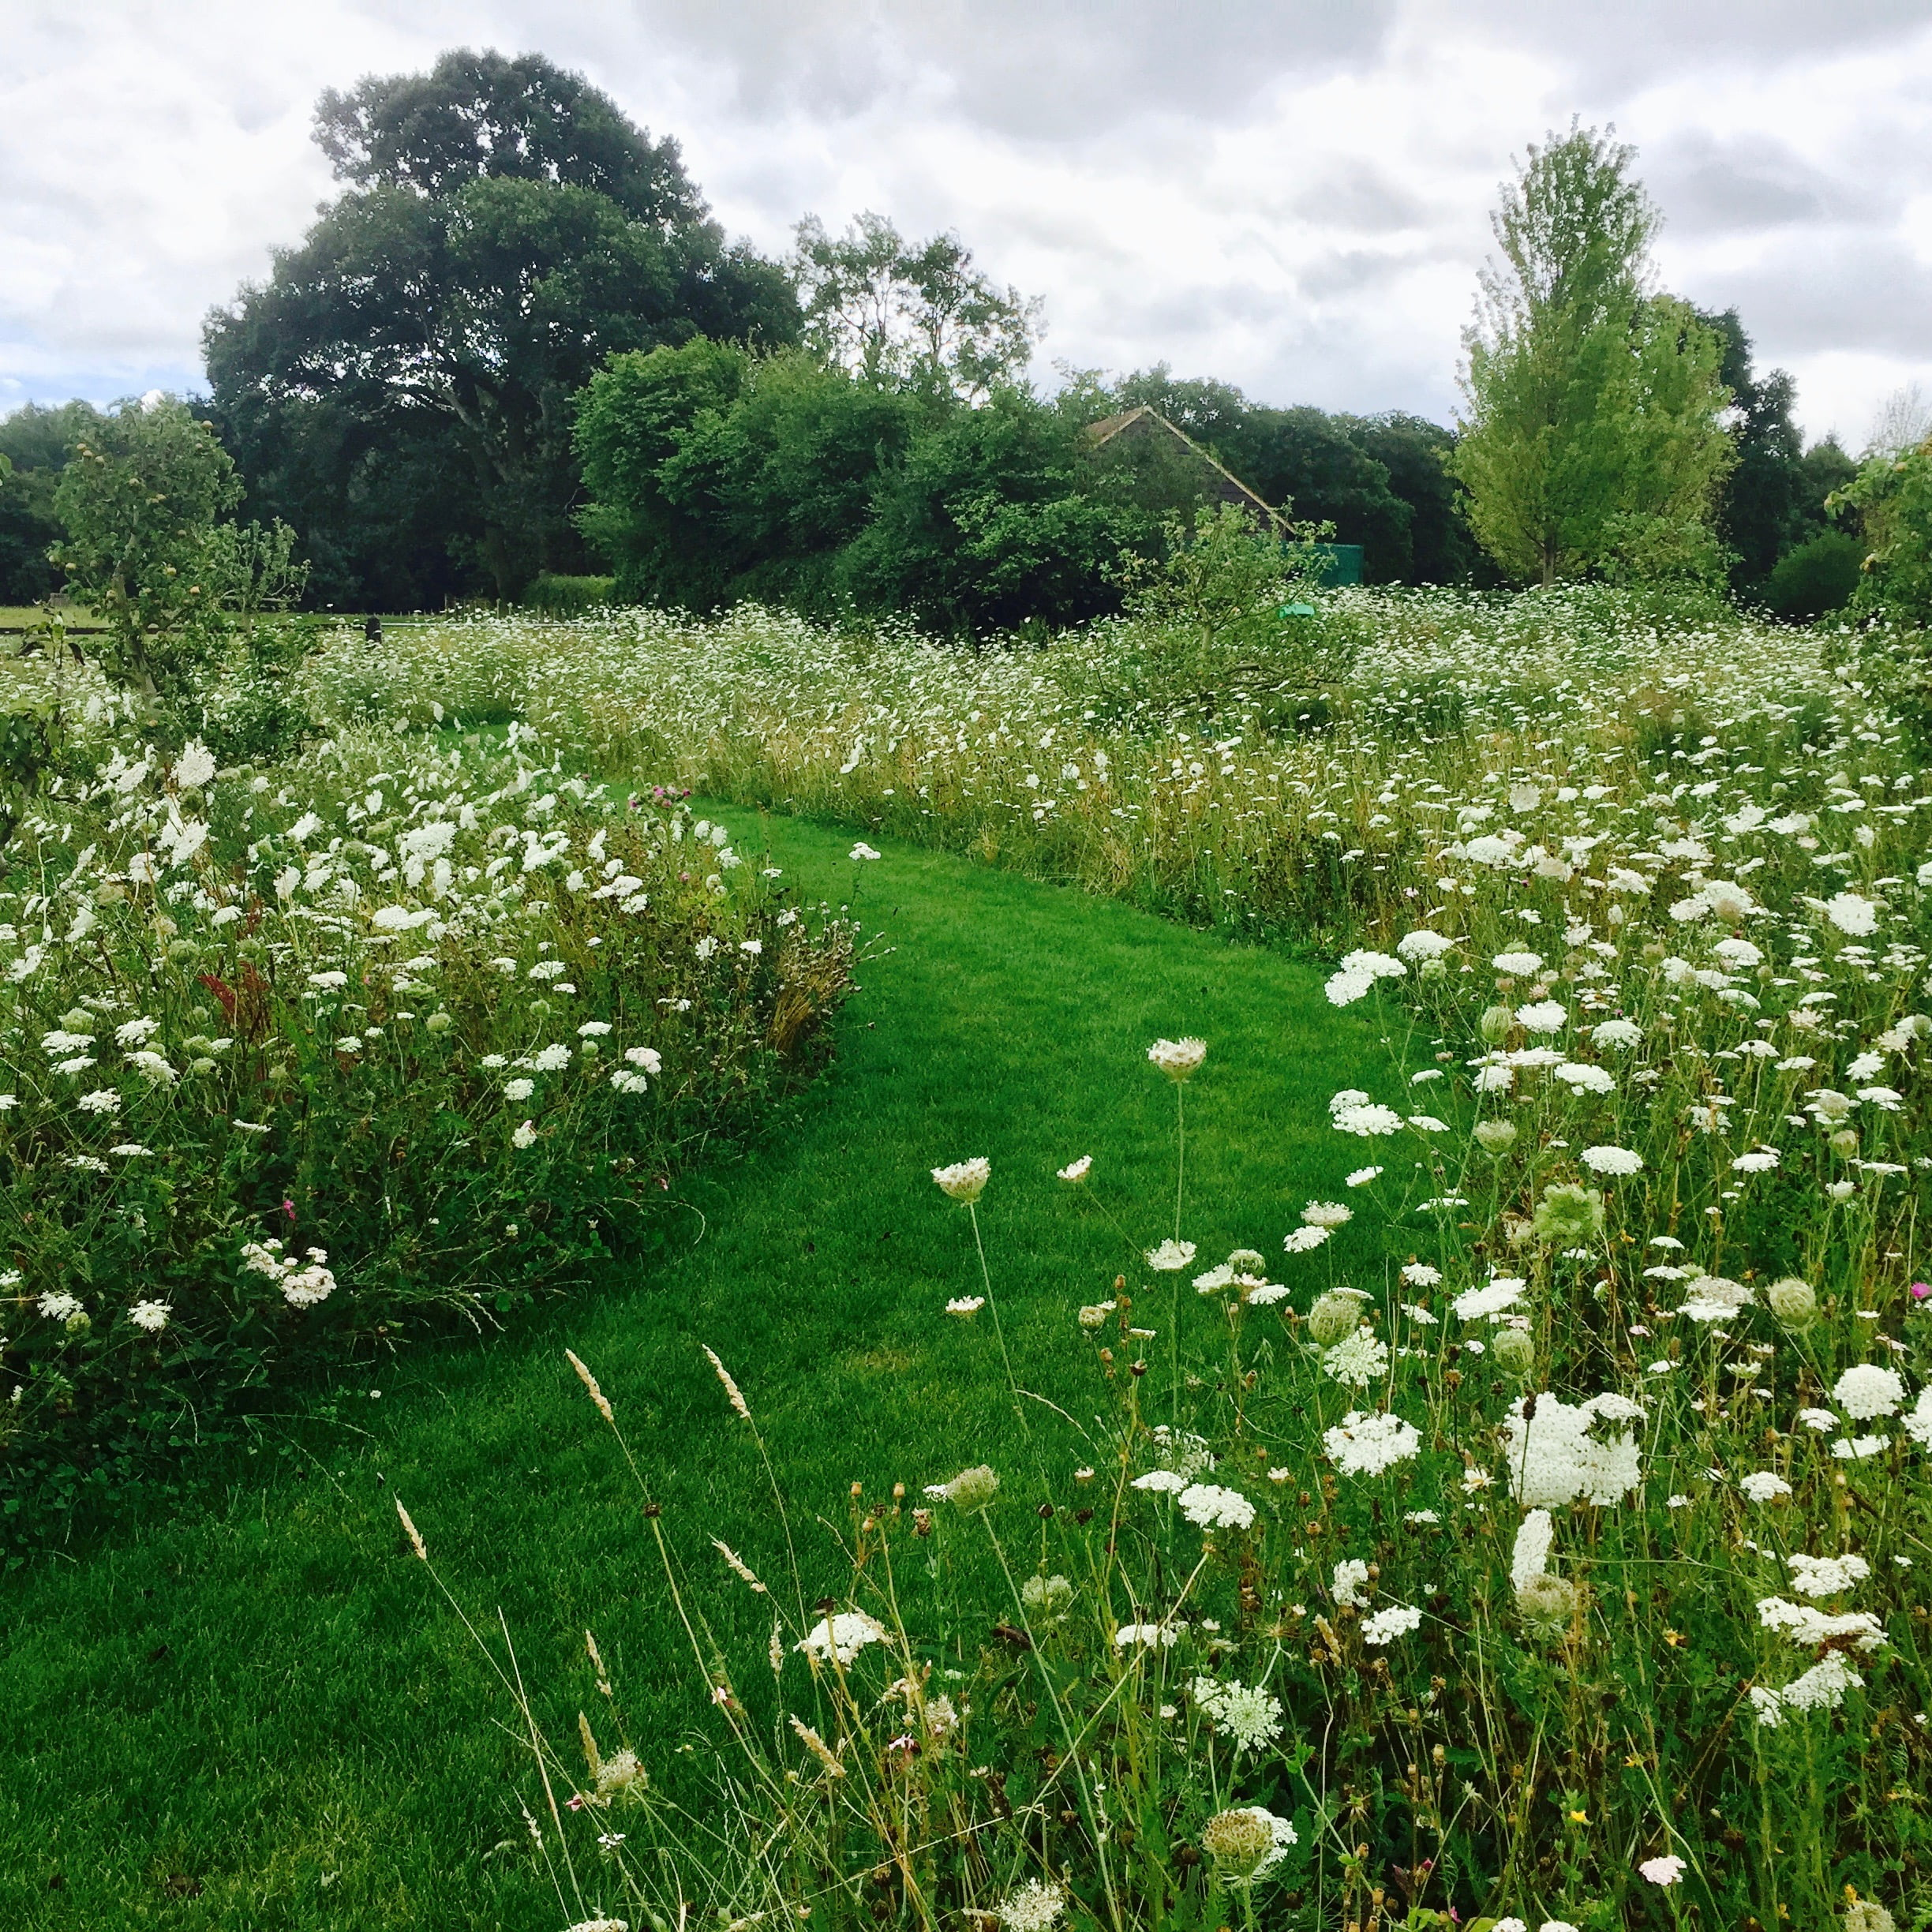 This is a new wild flower meadow with a wide mown path